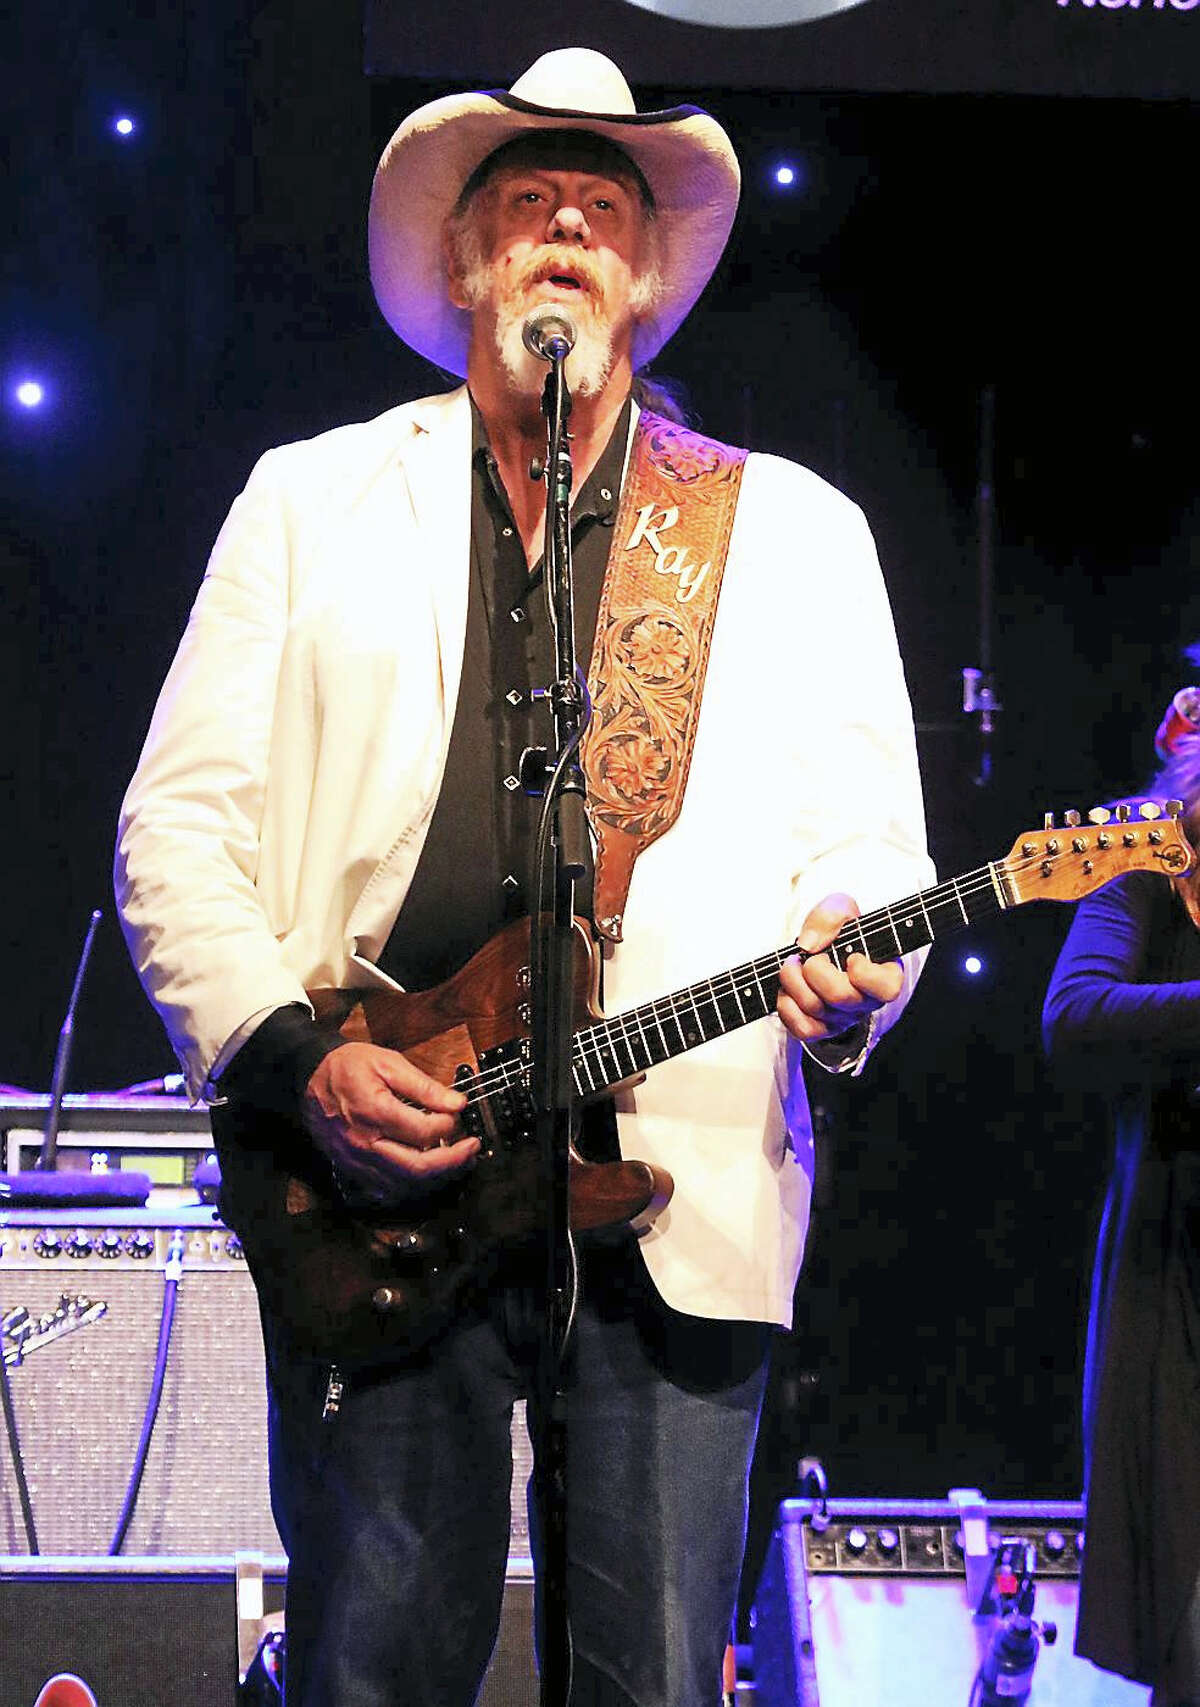 Photo by John AtashianSinger, songwriter and guitarist Ray Benson, of the country music group Asleep at the Wheel, performs with the band at Infinity Music Hall in Norfolk March 11. The group has won nine Grammy Awards since their 1970 inception. During their career, members have released more than 20 studio albums, and have had more than 20 singles on the Billboard country charts. The band's Connecticut appearance attracted a capacity crowd of fans in Norfolk. To view all of the upcoming entertainment coming to Infinity Music Hall in Norfolk and Hartford you can visit www.infinityhall.com